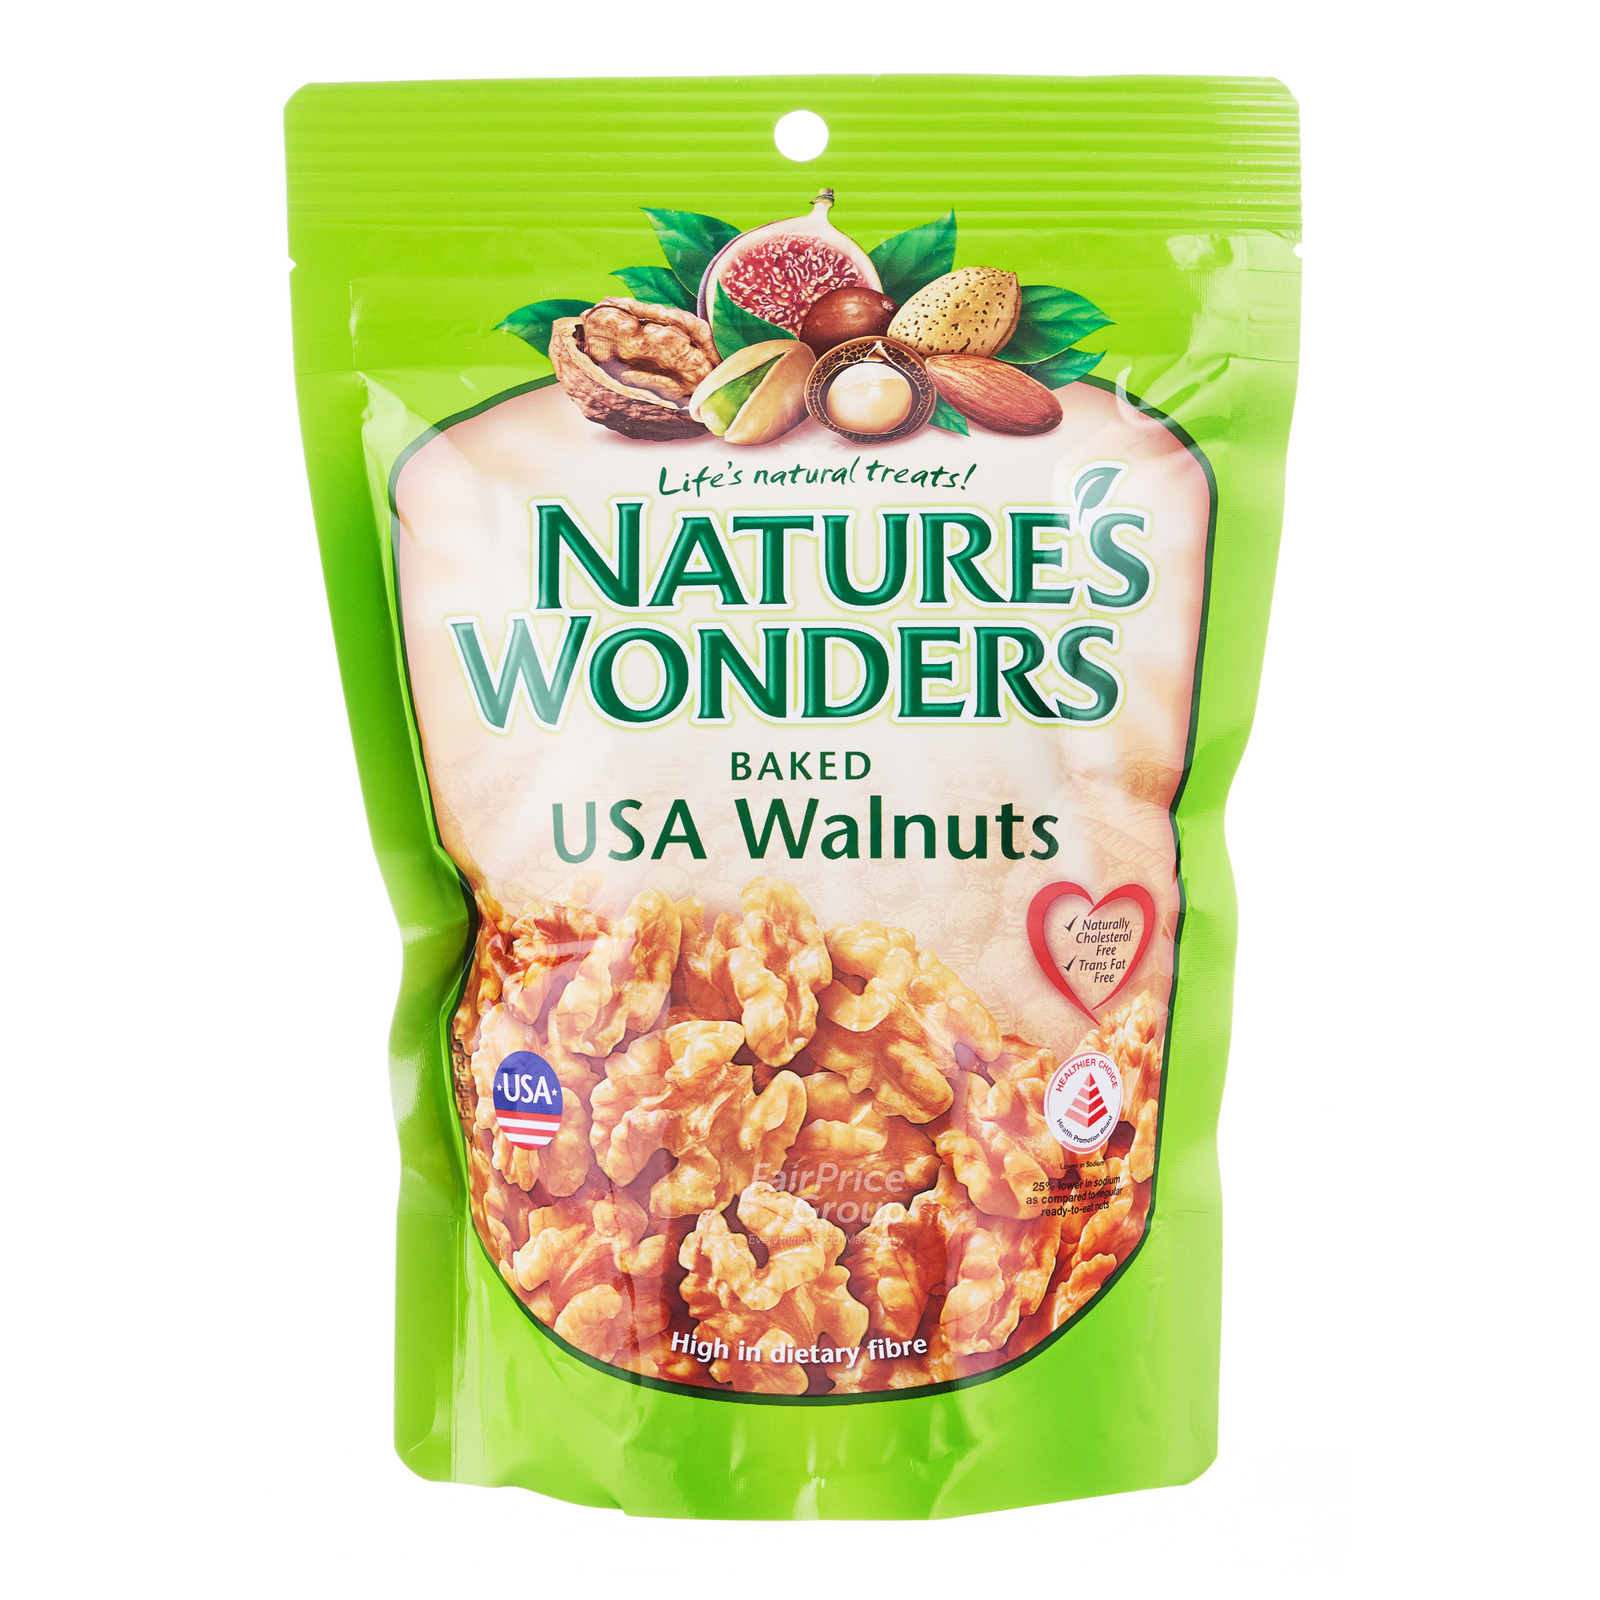 Nature's Wonders Baked Nuts - USA Walnuts